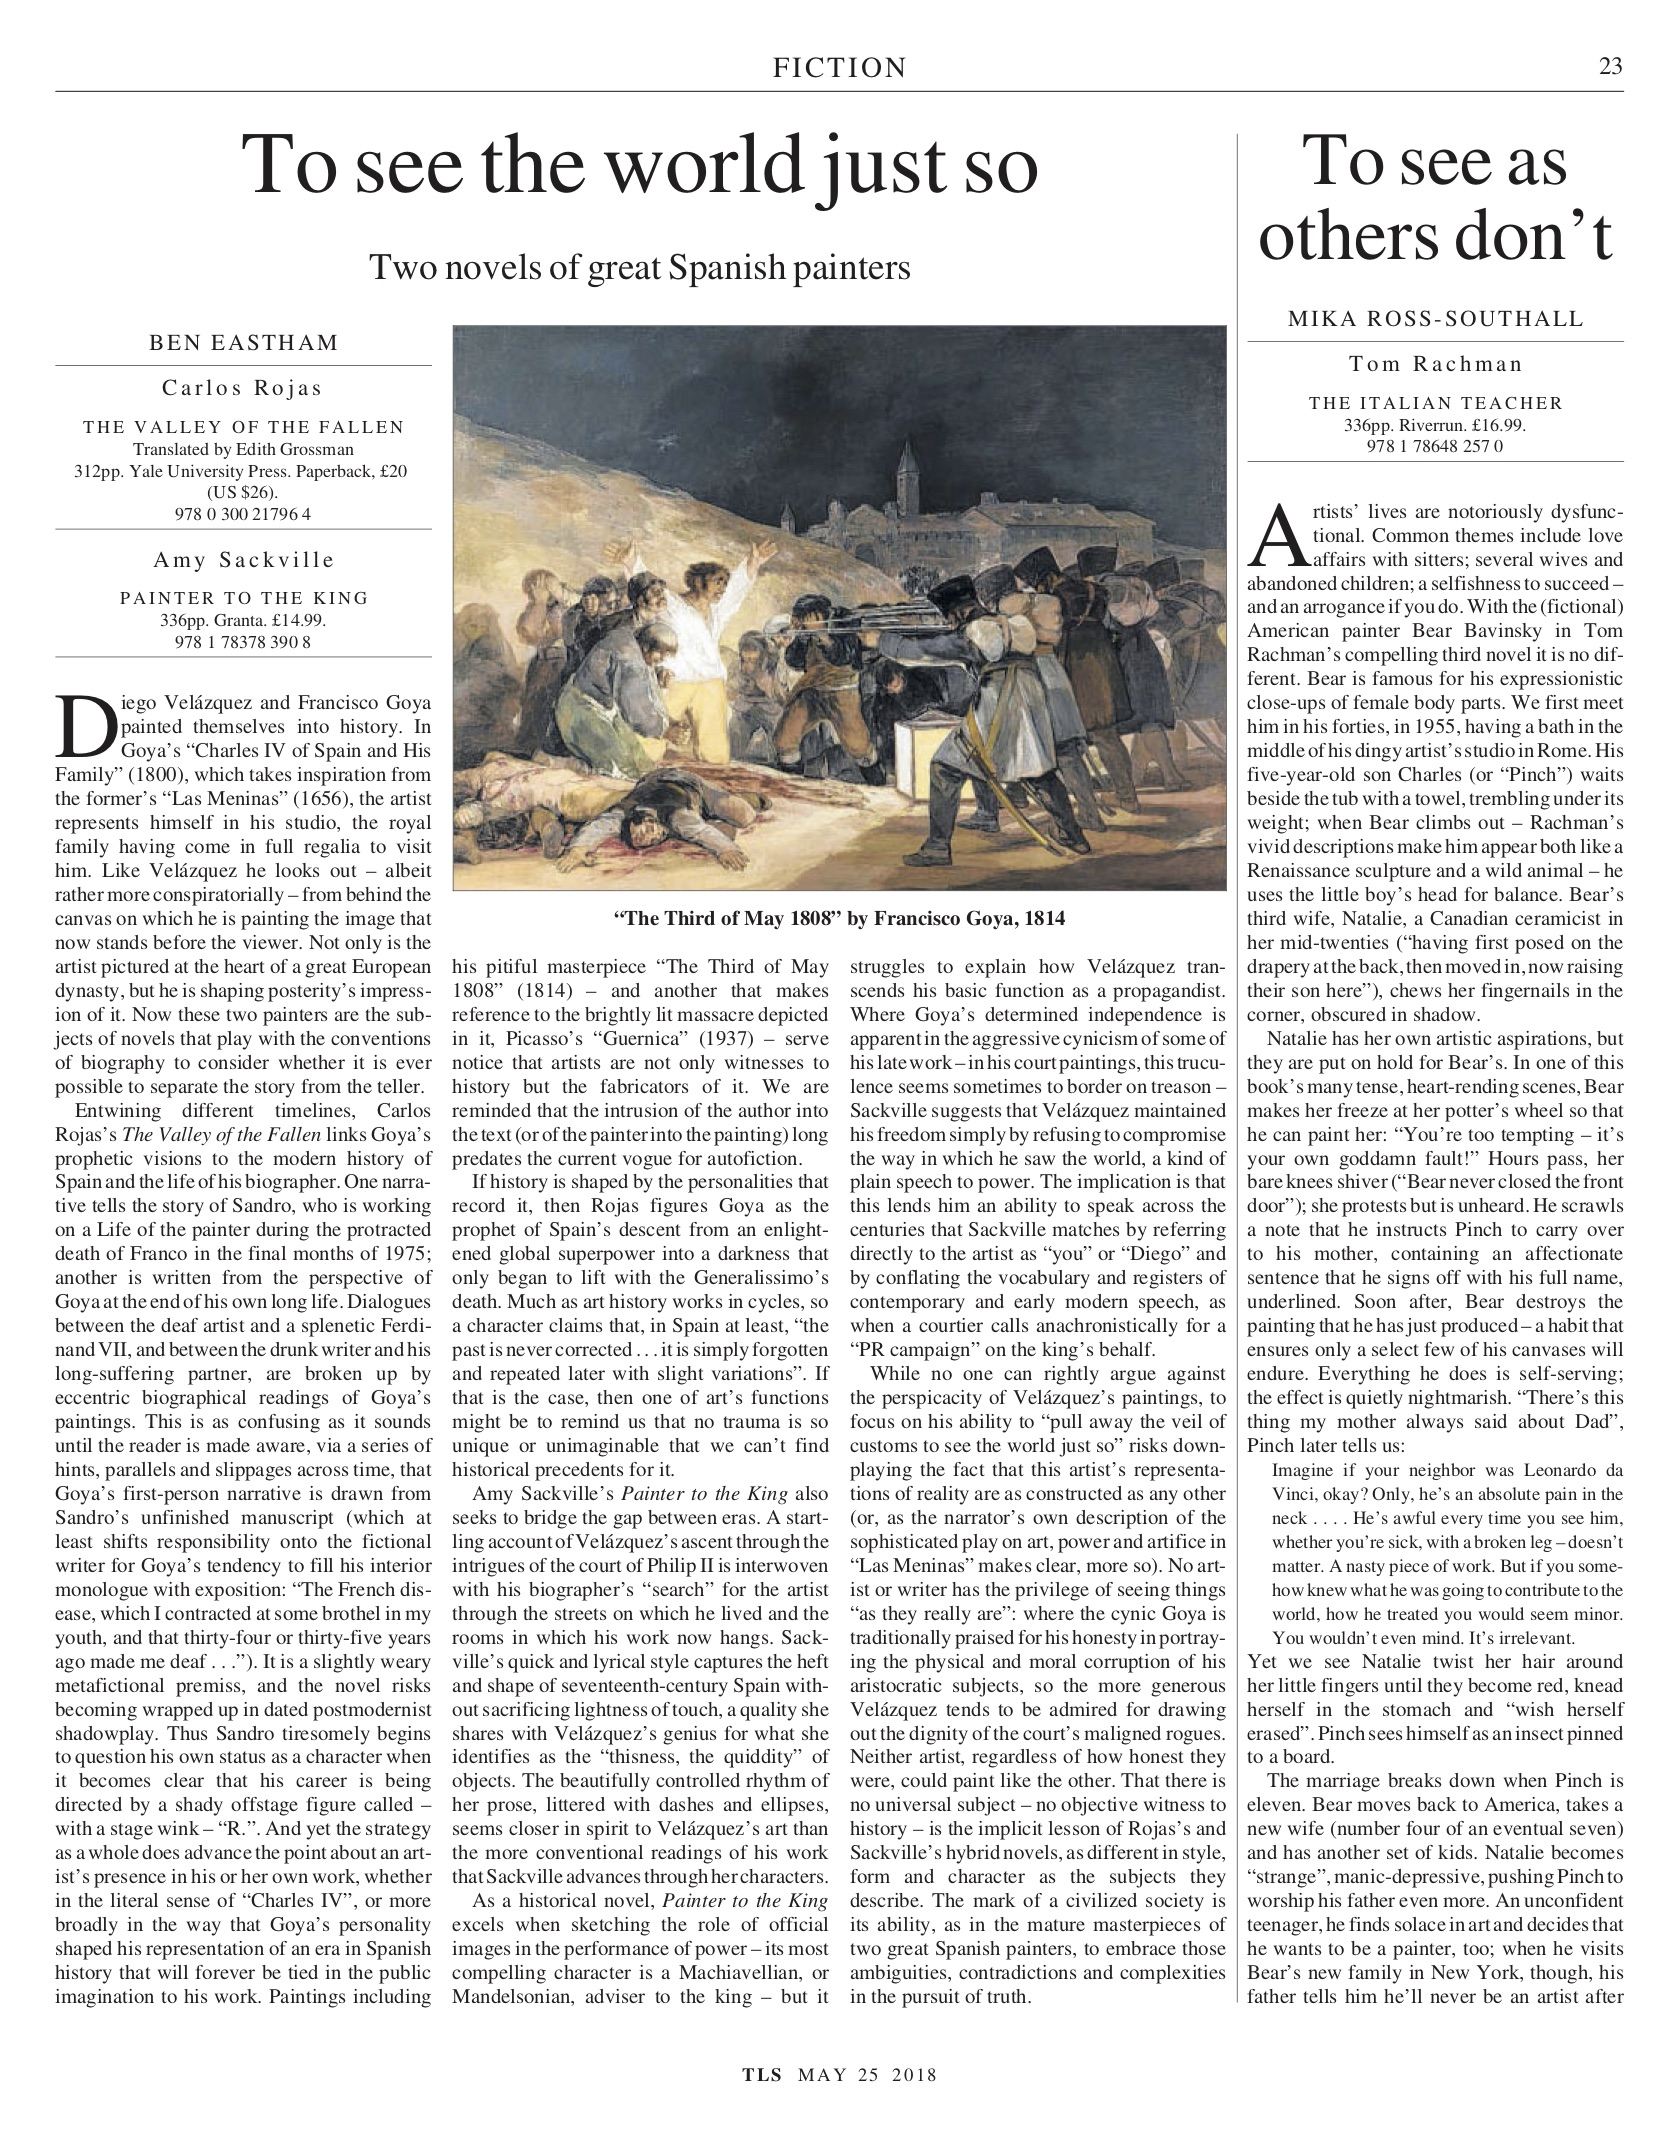 To see as others don't, Published in The Times Literary Supplement, May 25, 2018